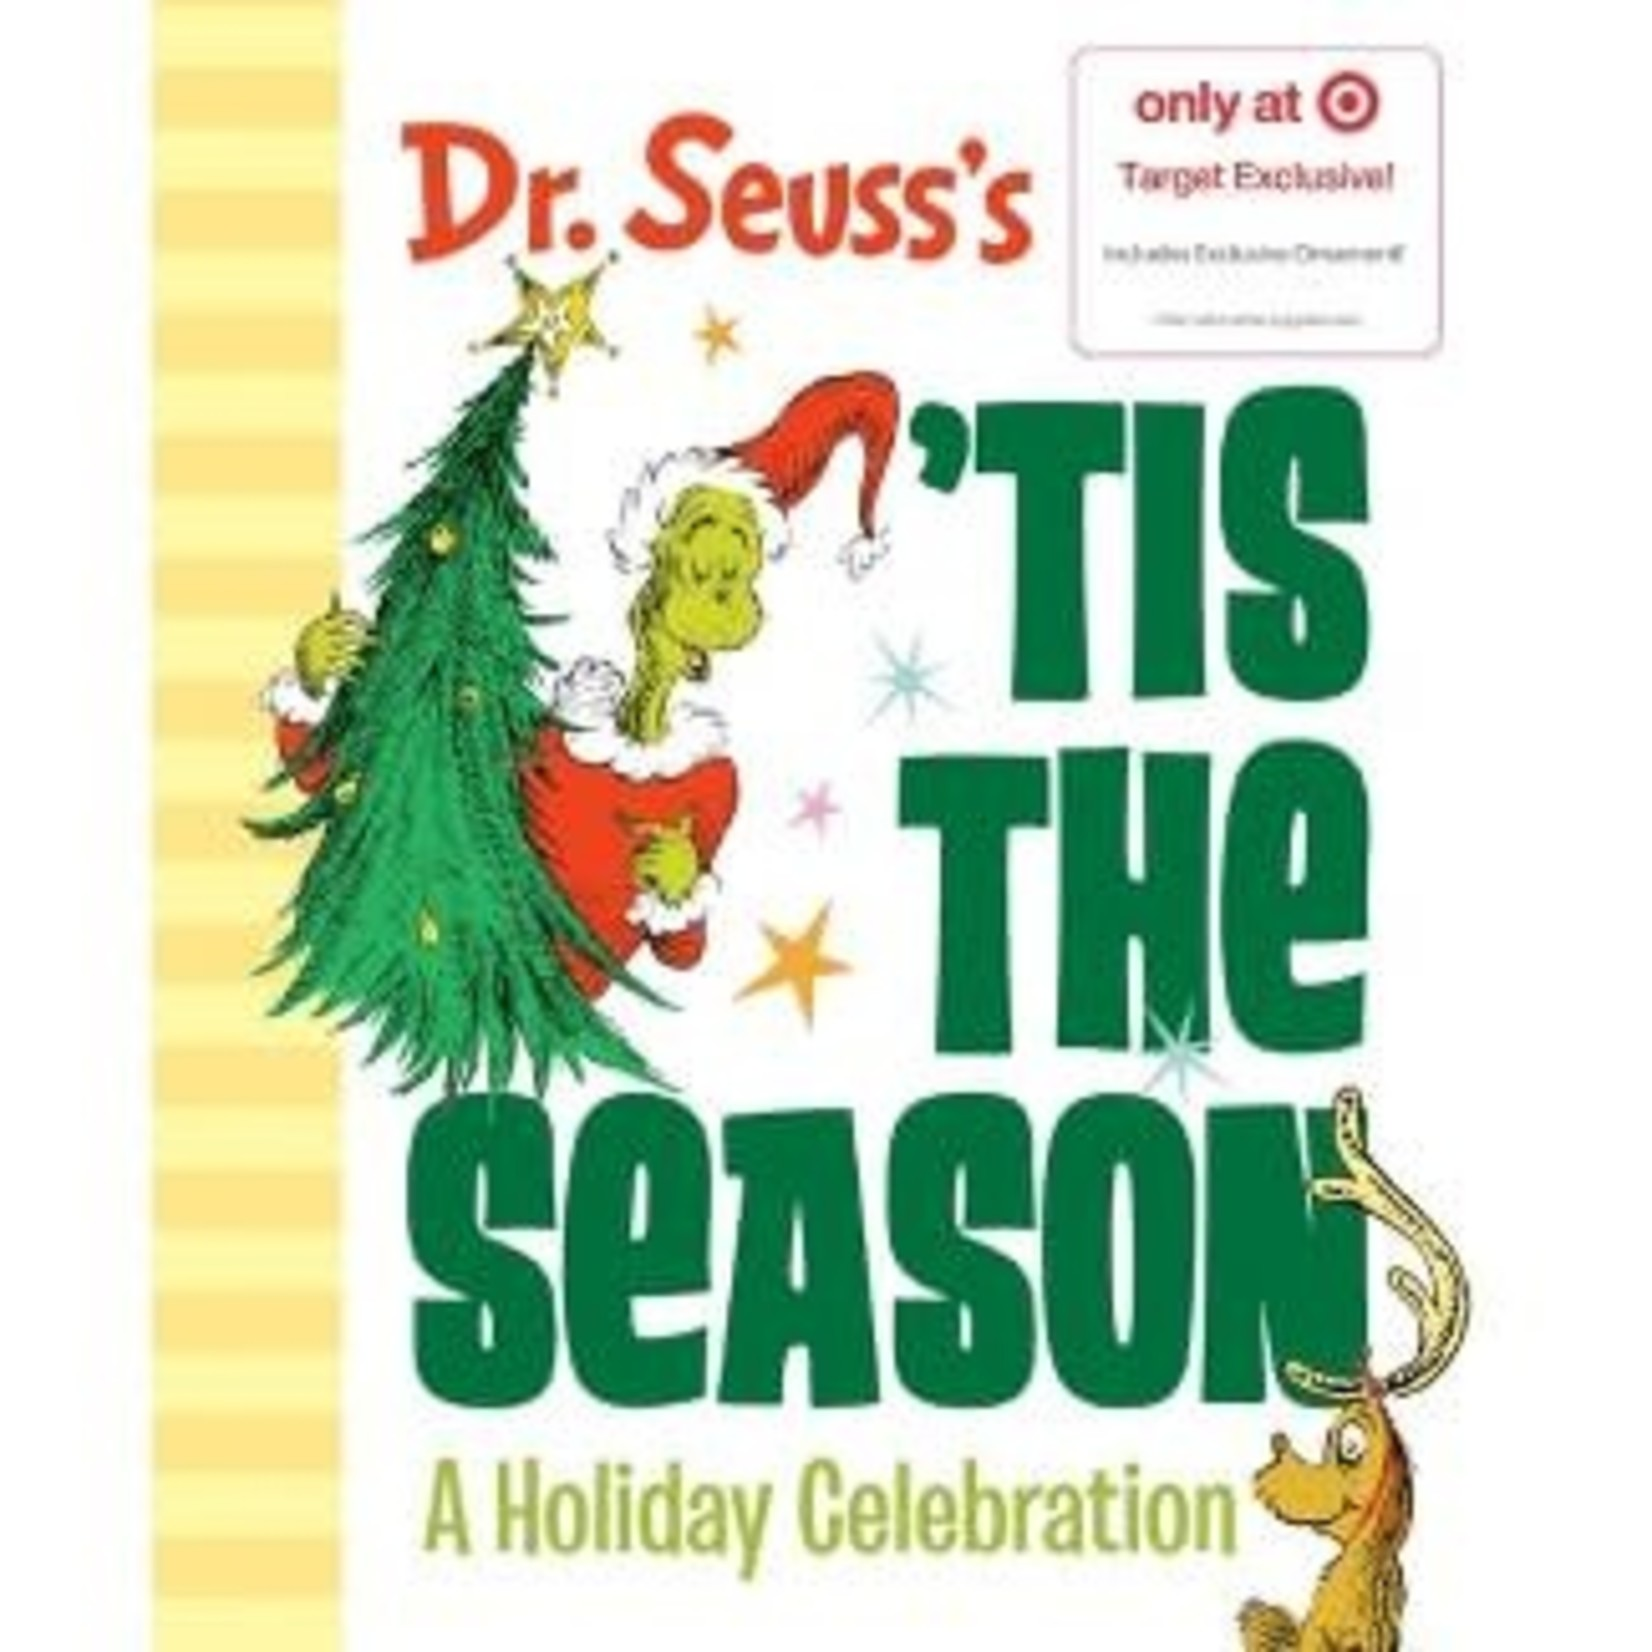 Dr. Seuss's 'Tis the Season: A Holiday Celebration - Target Exclusive Edition by Dr. Seuss (Hardcover)